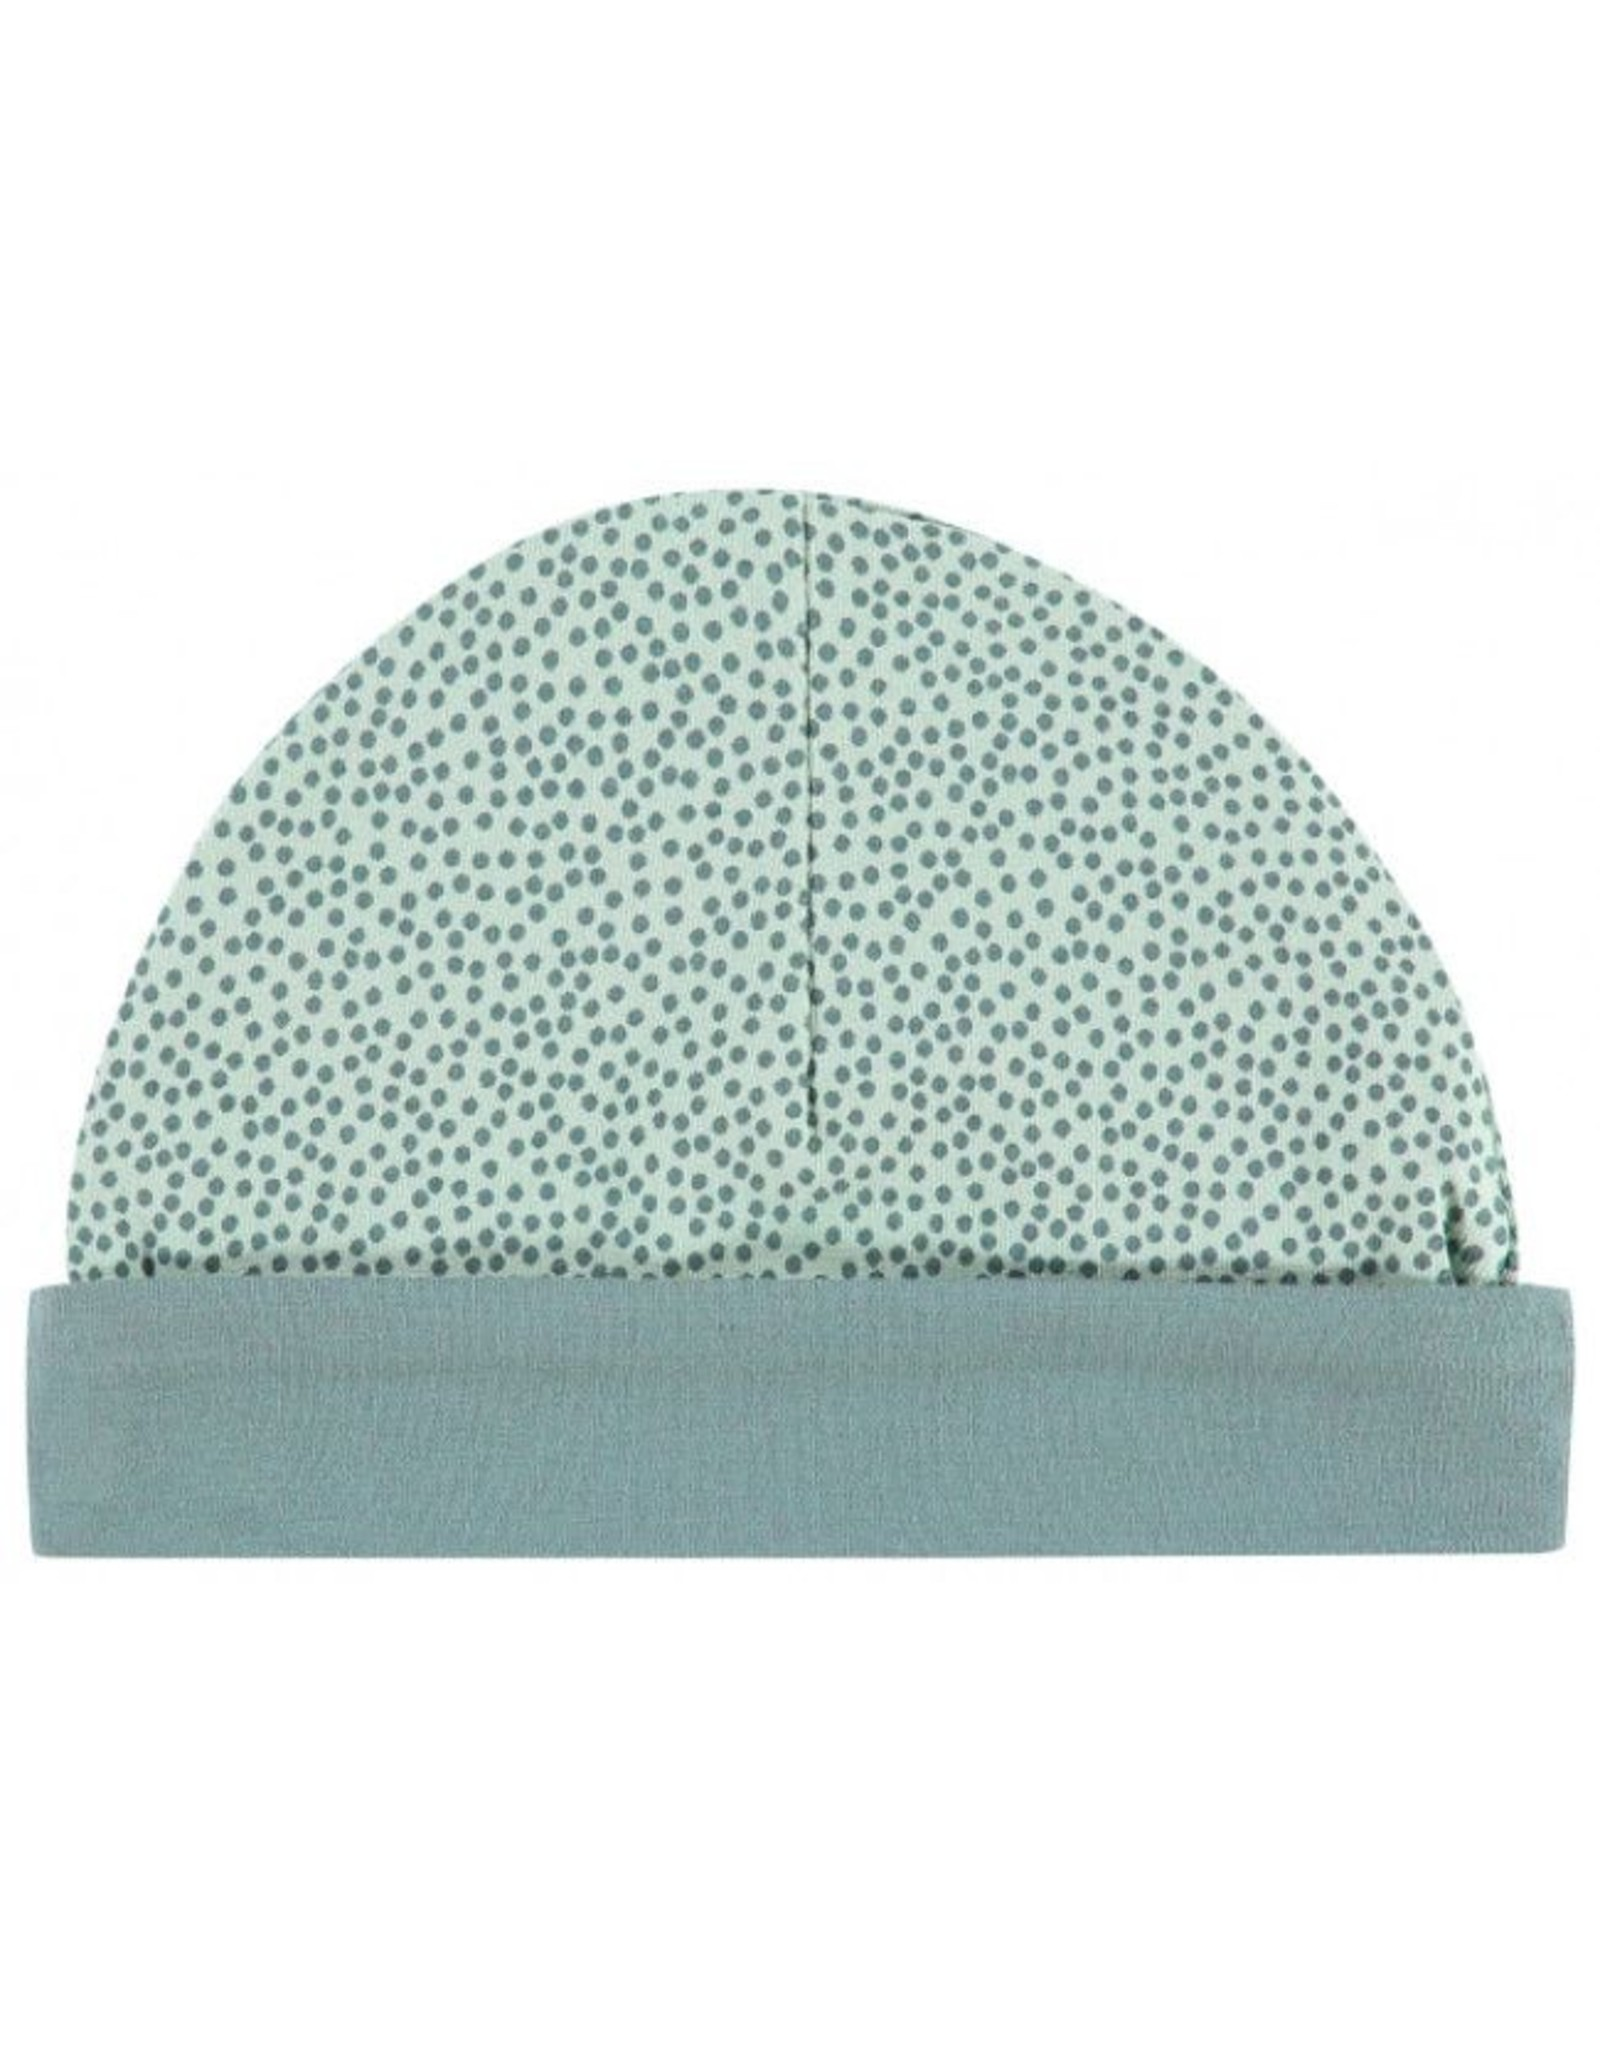 Noppies Noppies Hat reversible Babylon Grey mint